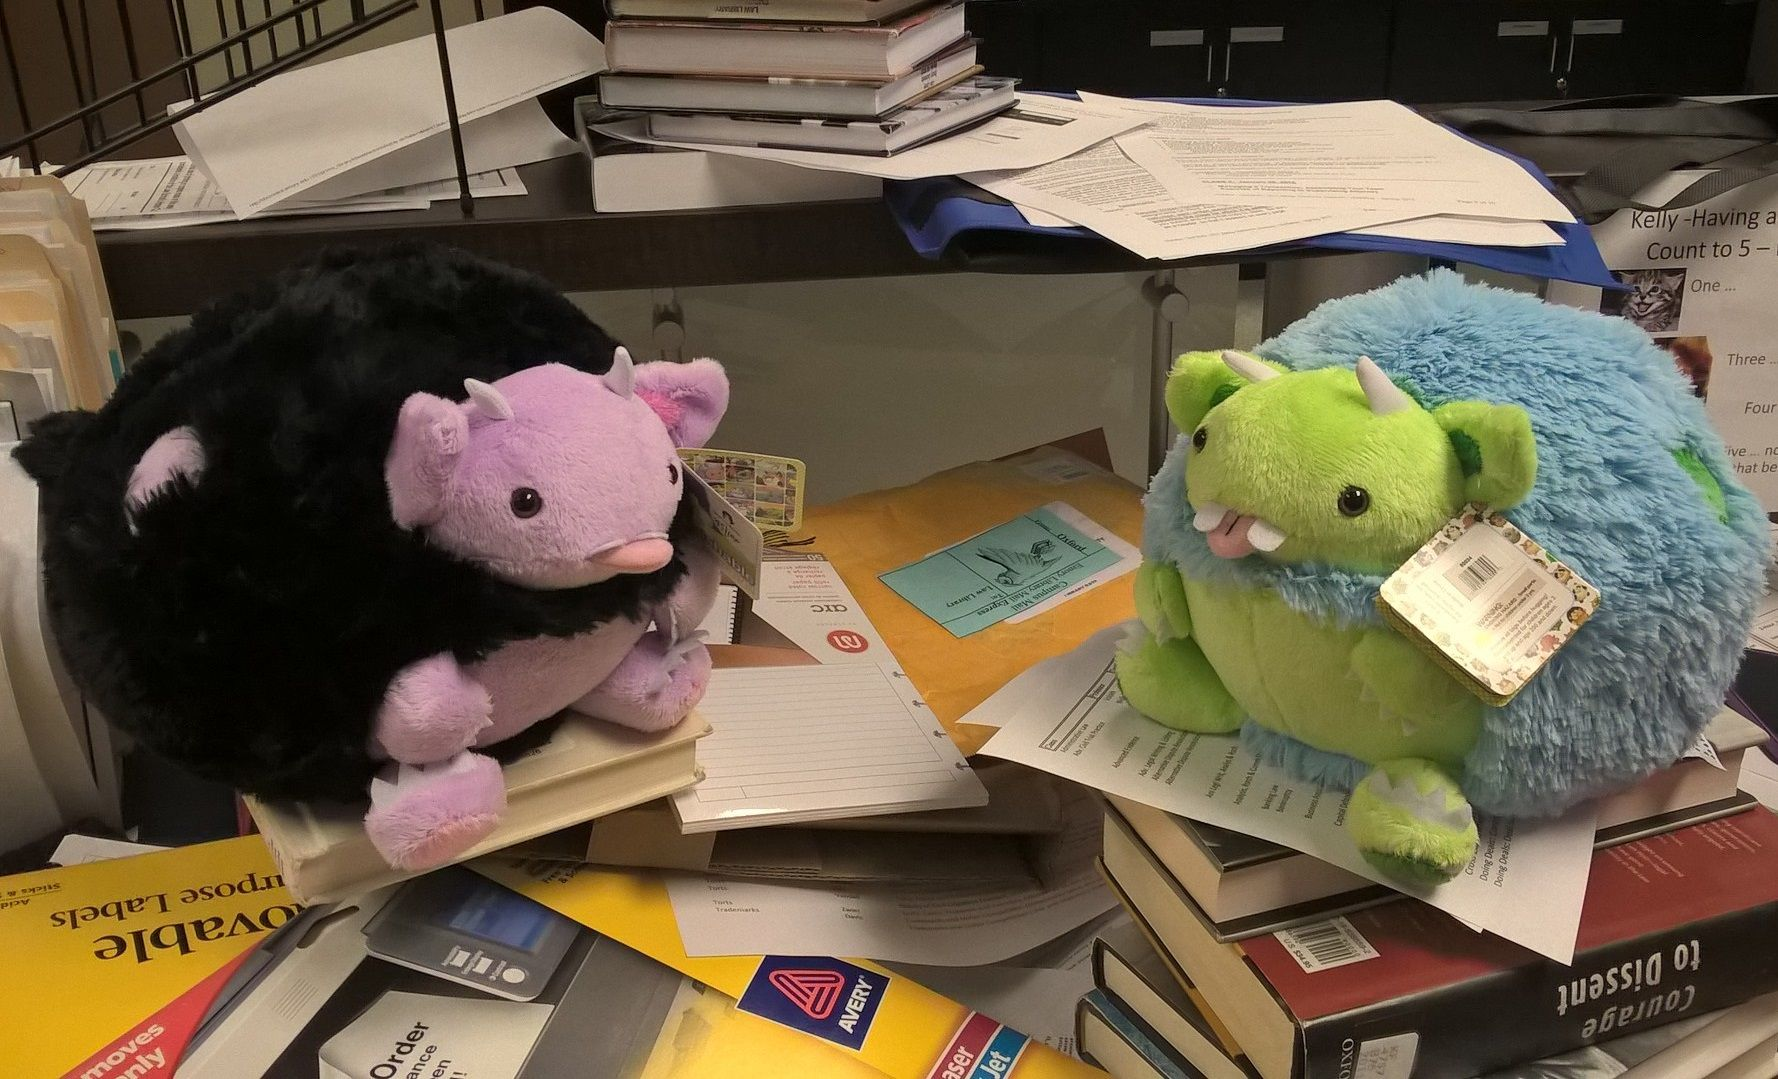 #squishywork2015 The semester is right around the corner. Look at all the reserves we have to get together! Is there a desk under all this mess?